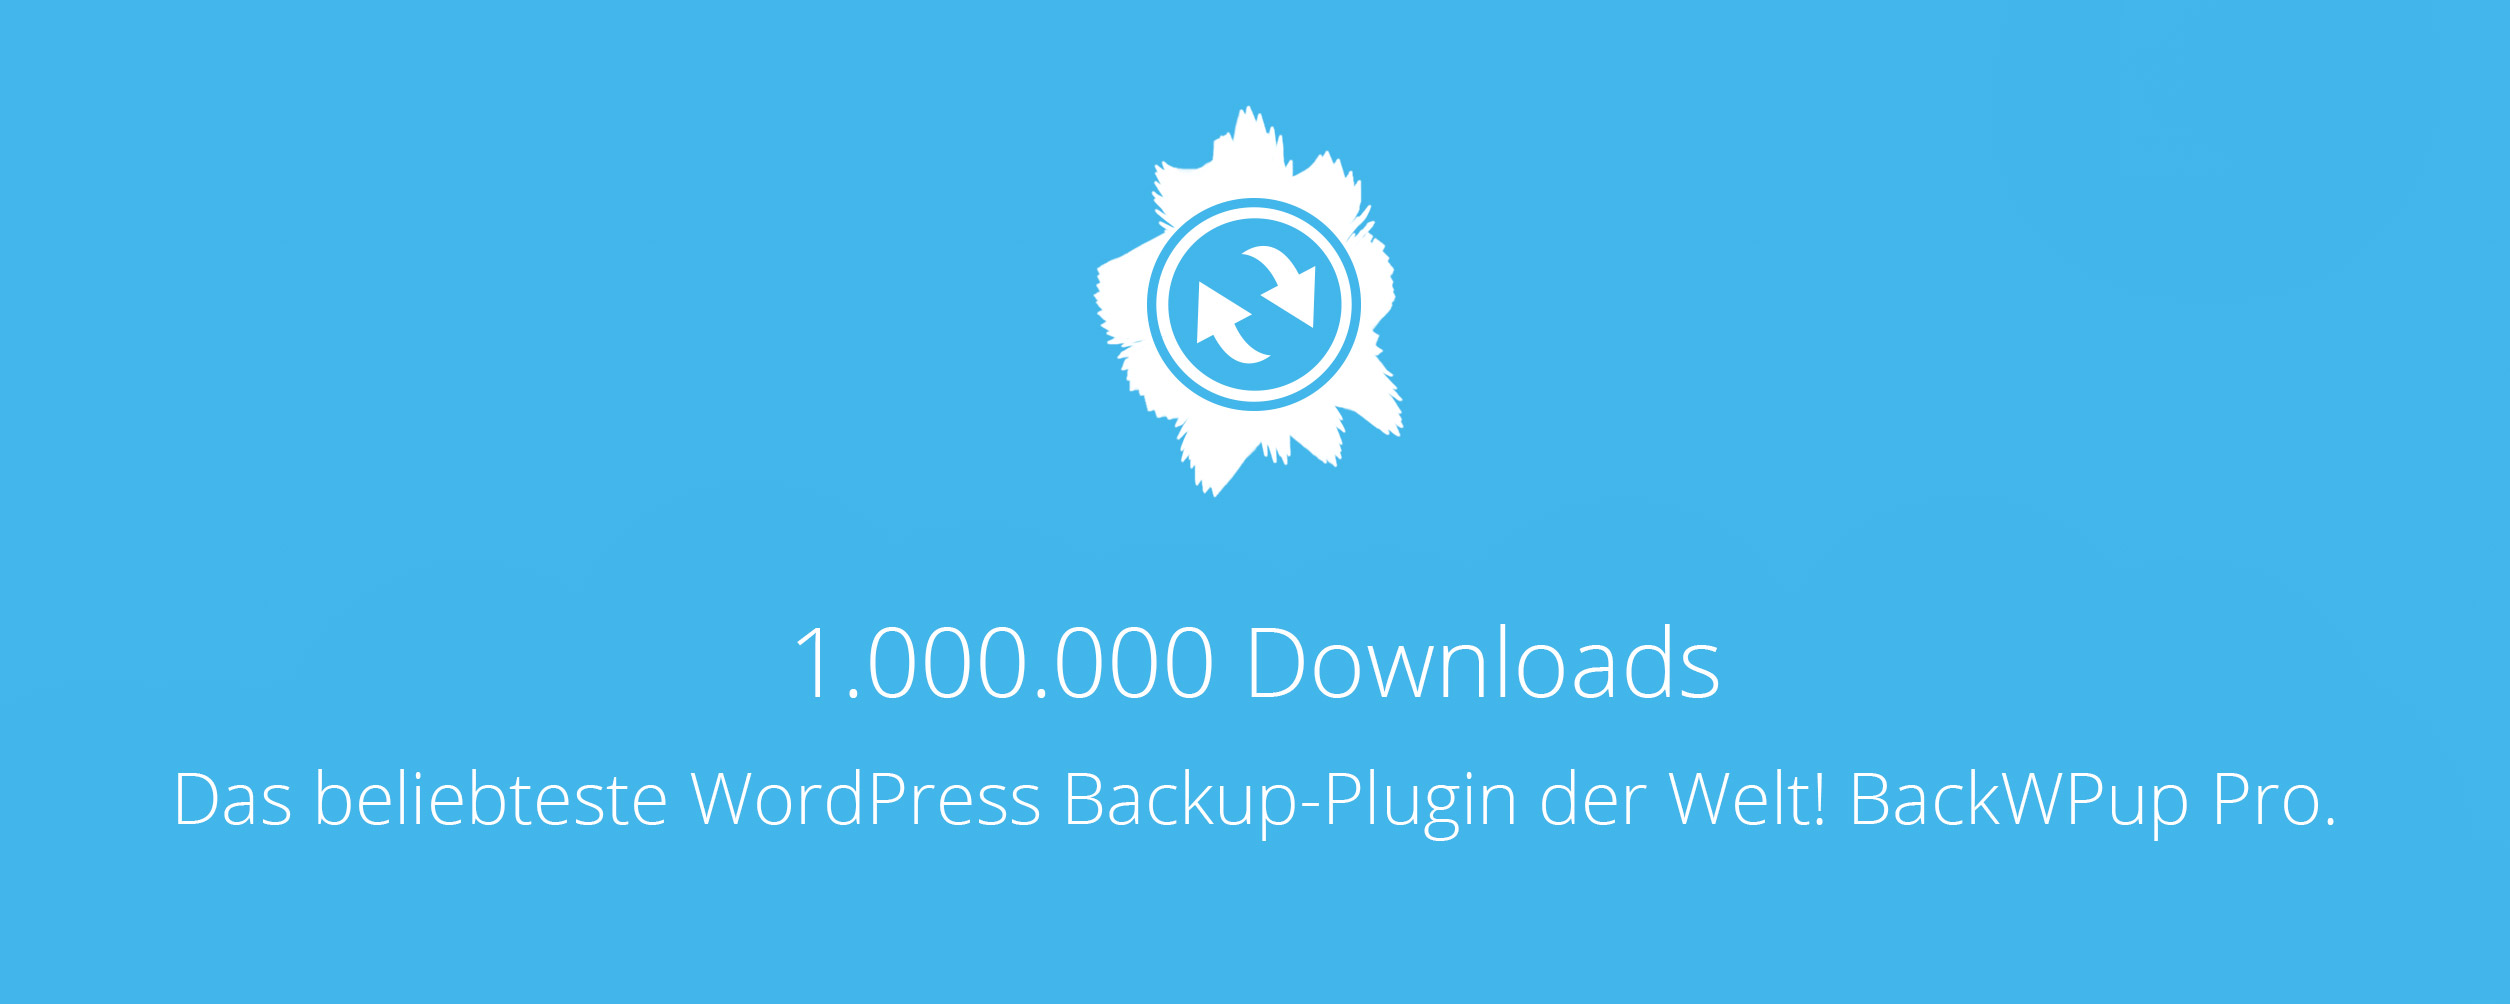 BackWPup Pro - 1 Million Downloads